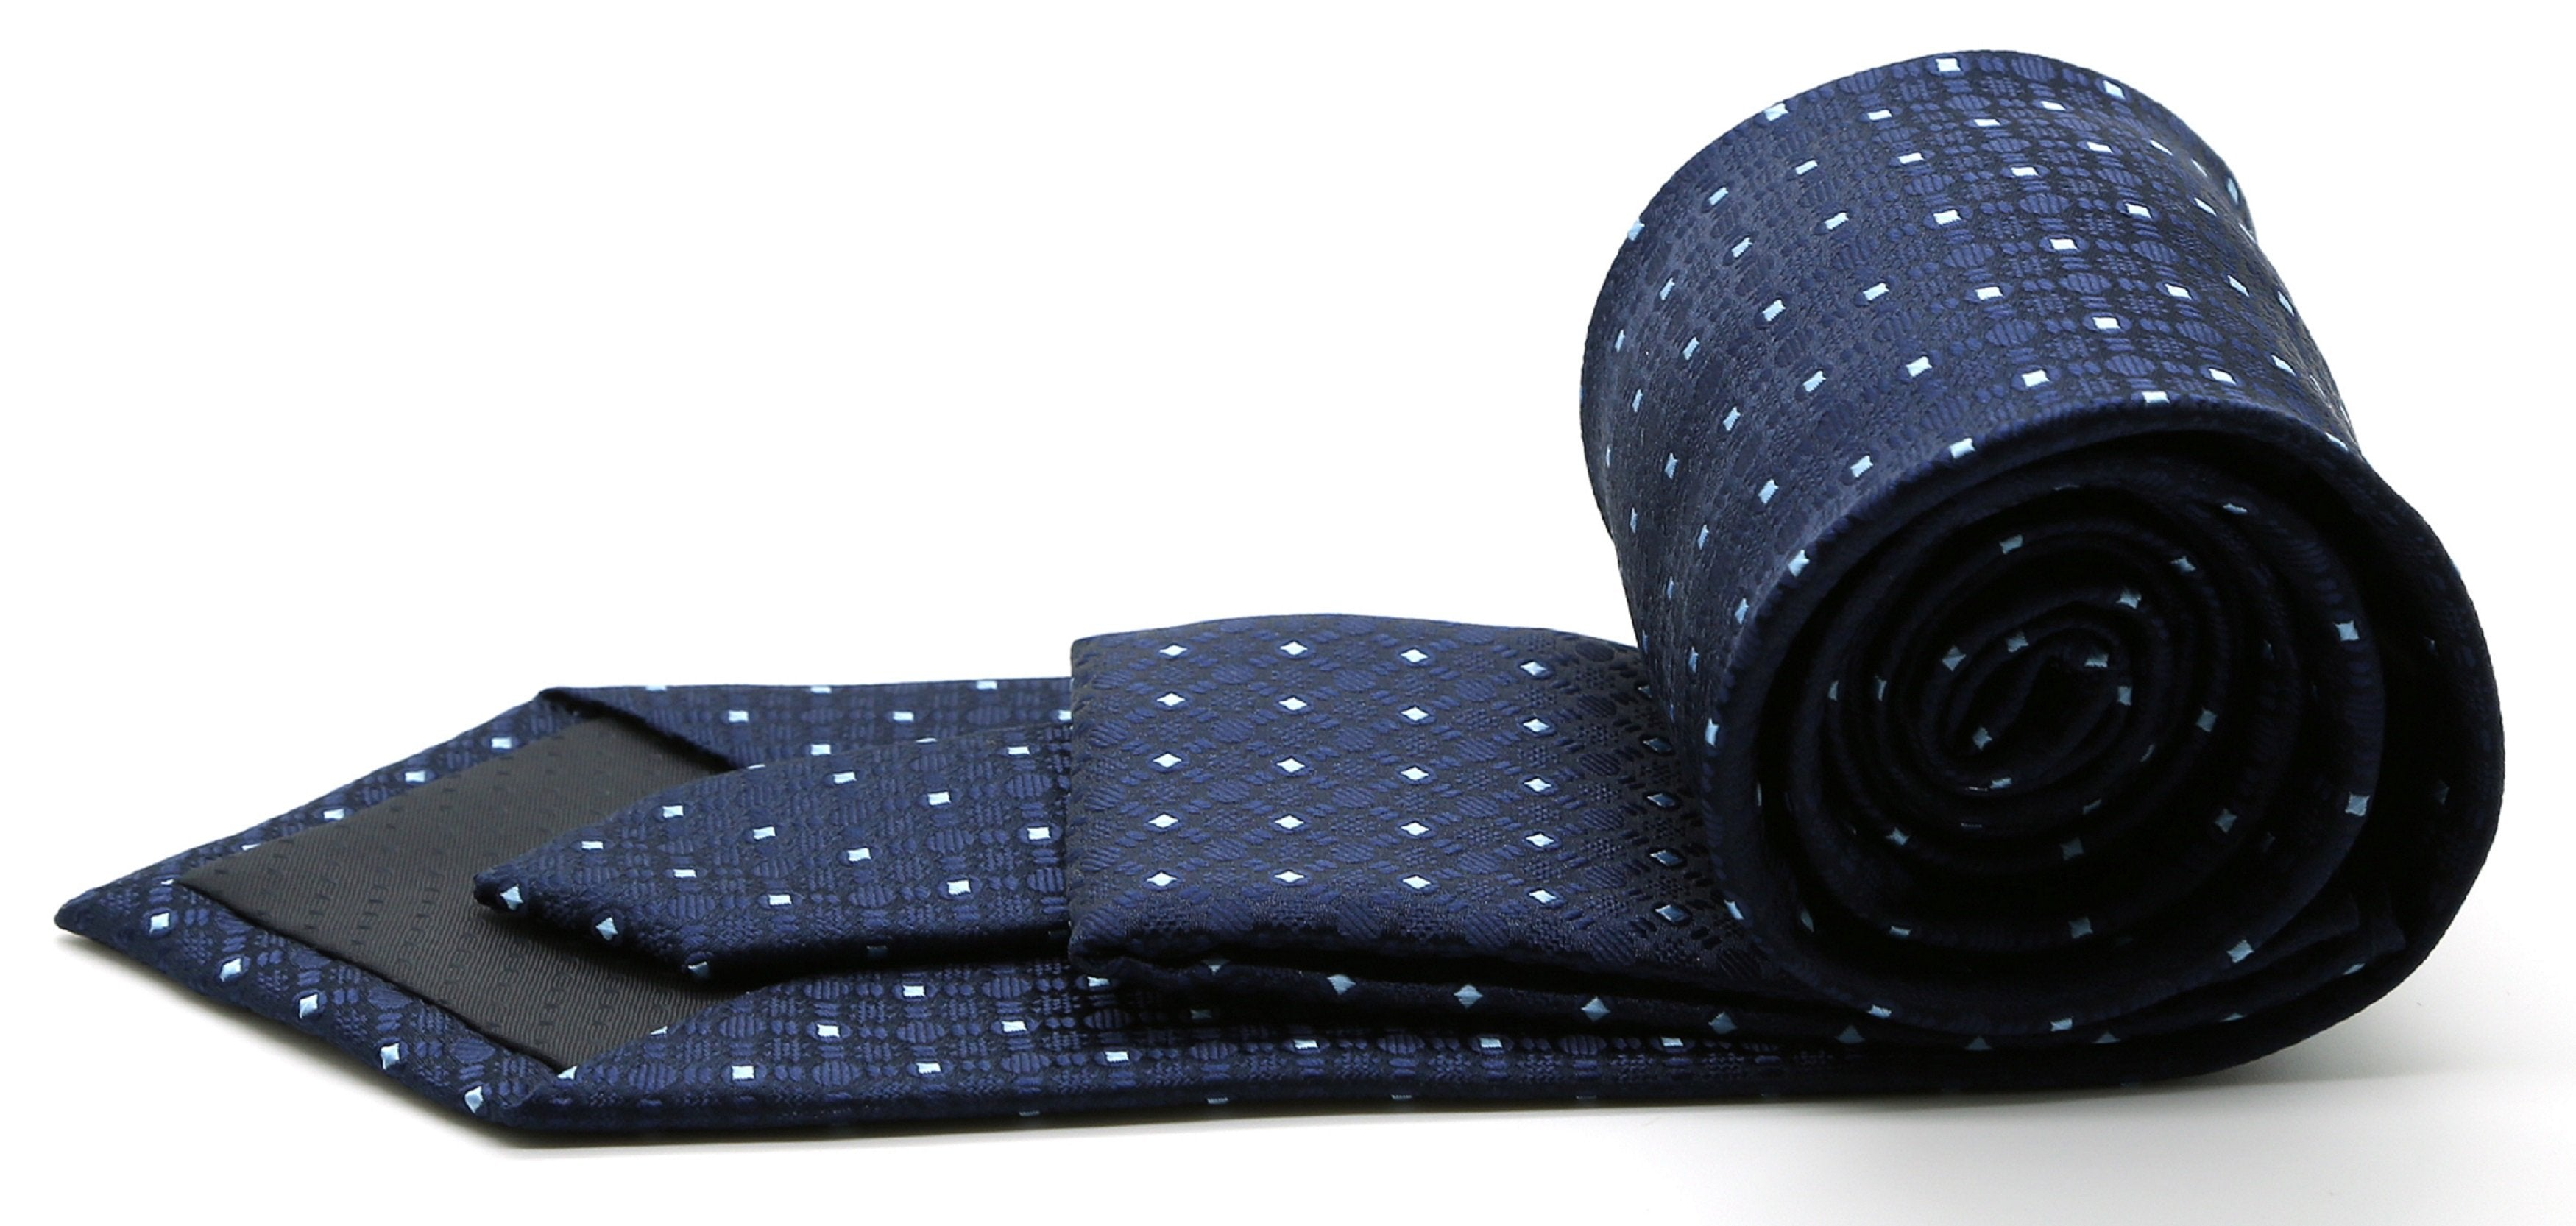 Mens Dads Classic Navy Geometric Pattern Business Casual Necktie & Hanky Set R-4 - Giorgio's Menswear